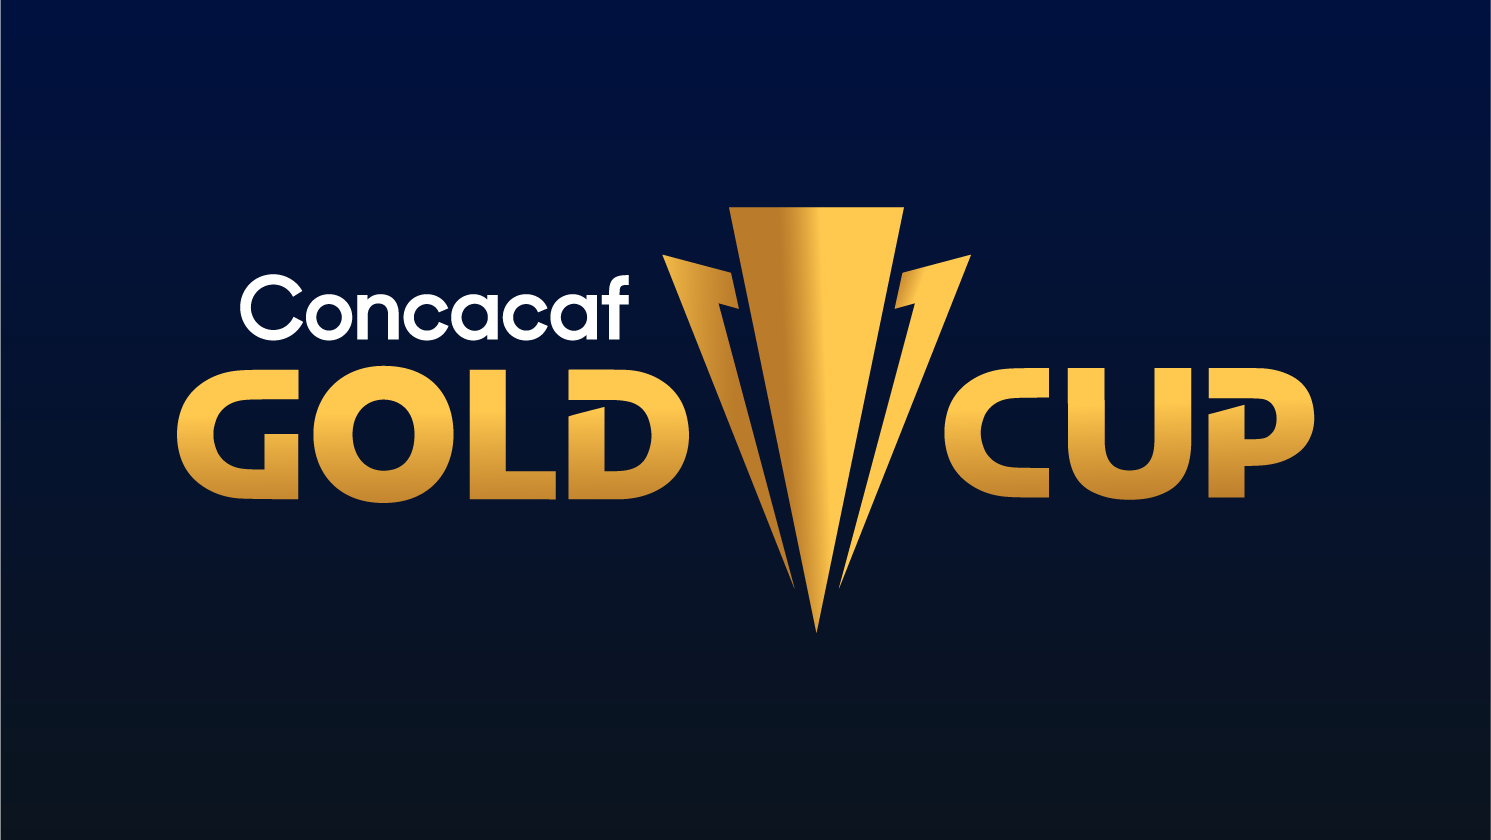 Concacaf Statement – Curacao Delegation at 2021 Gold Cup